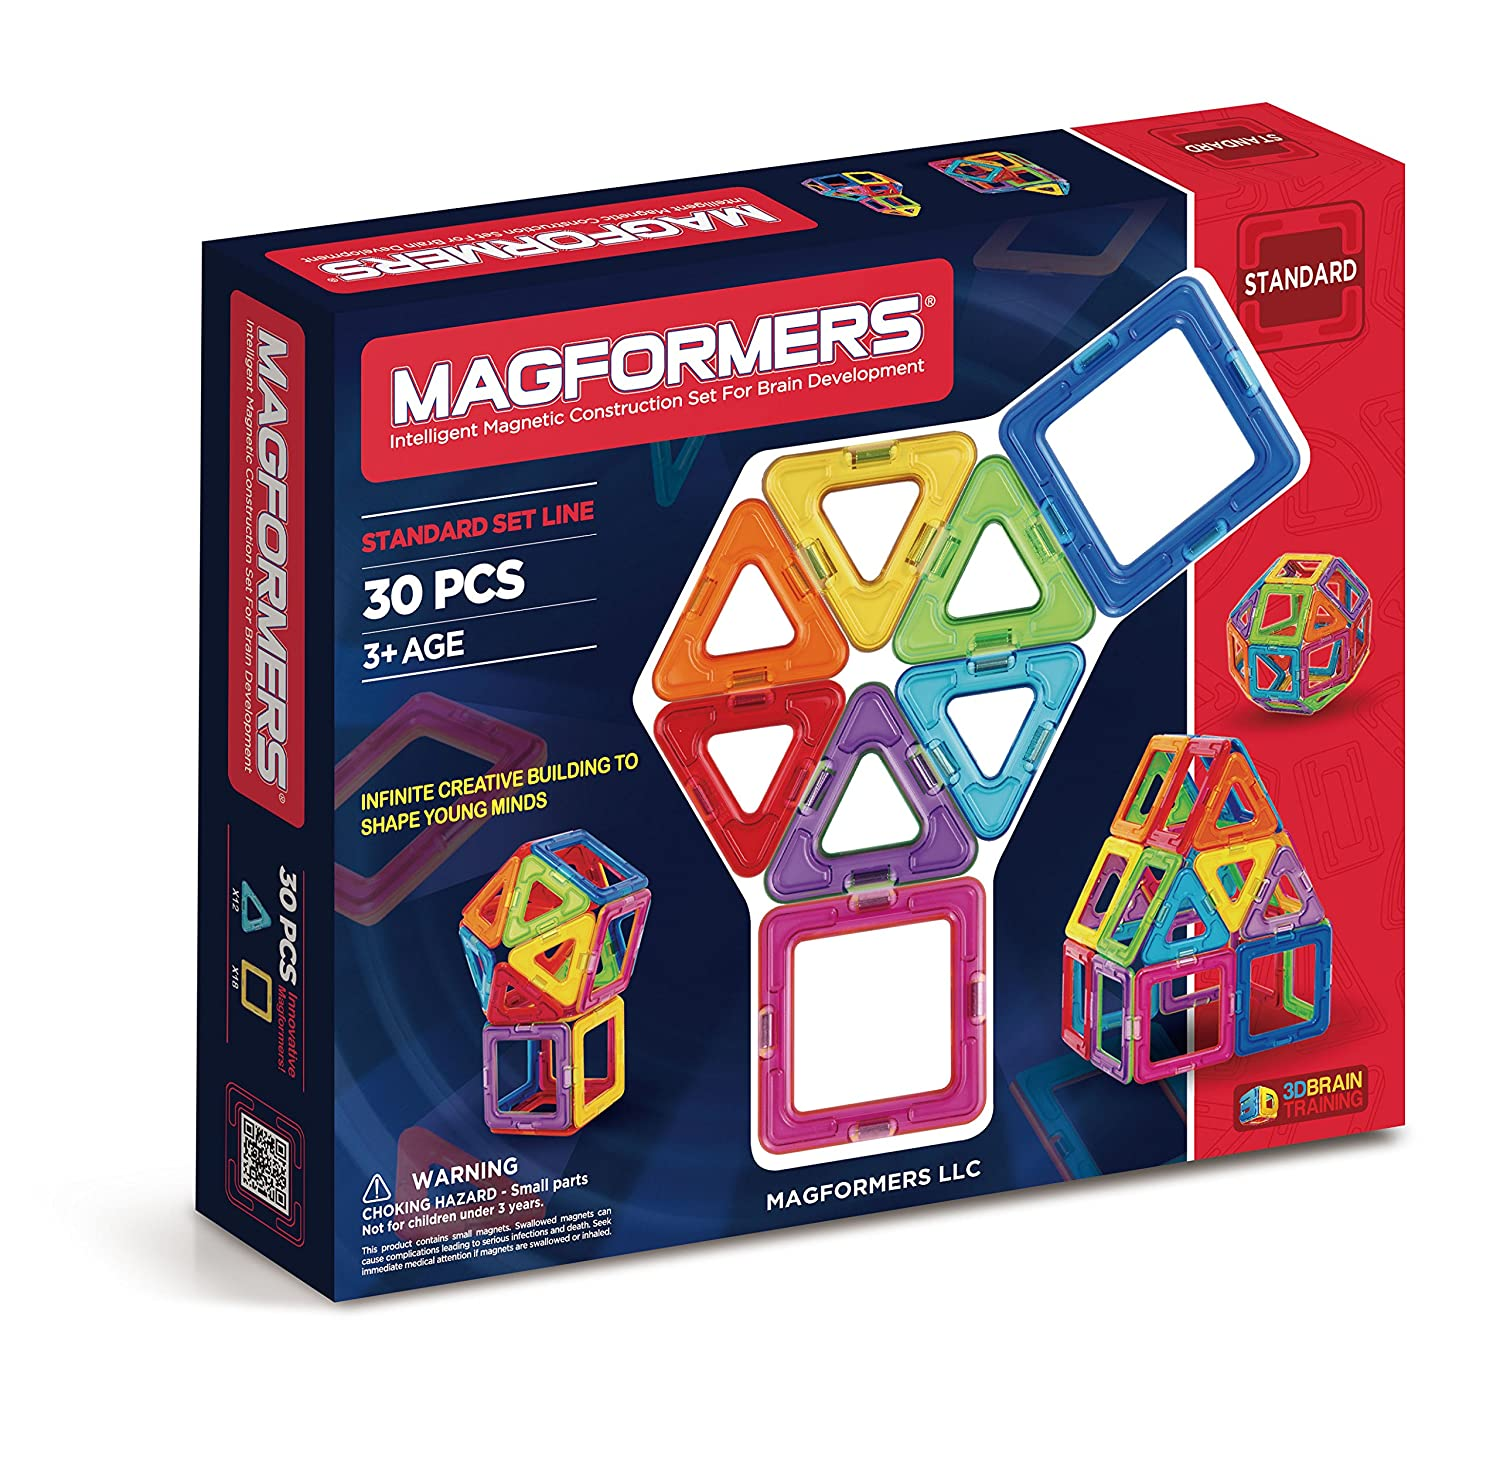 Amazon Magformers Standard Set 30 pieces Toys & Games